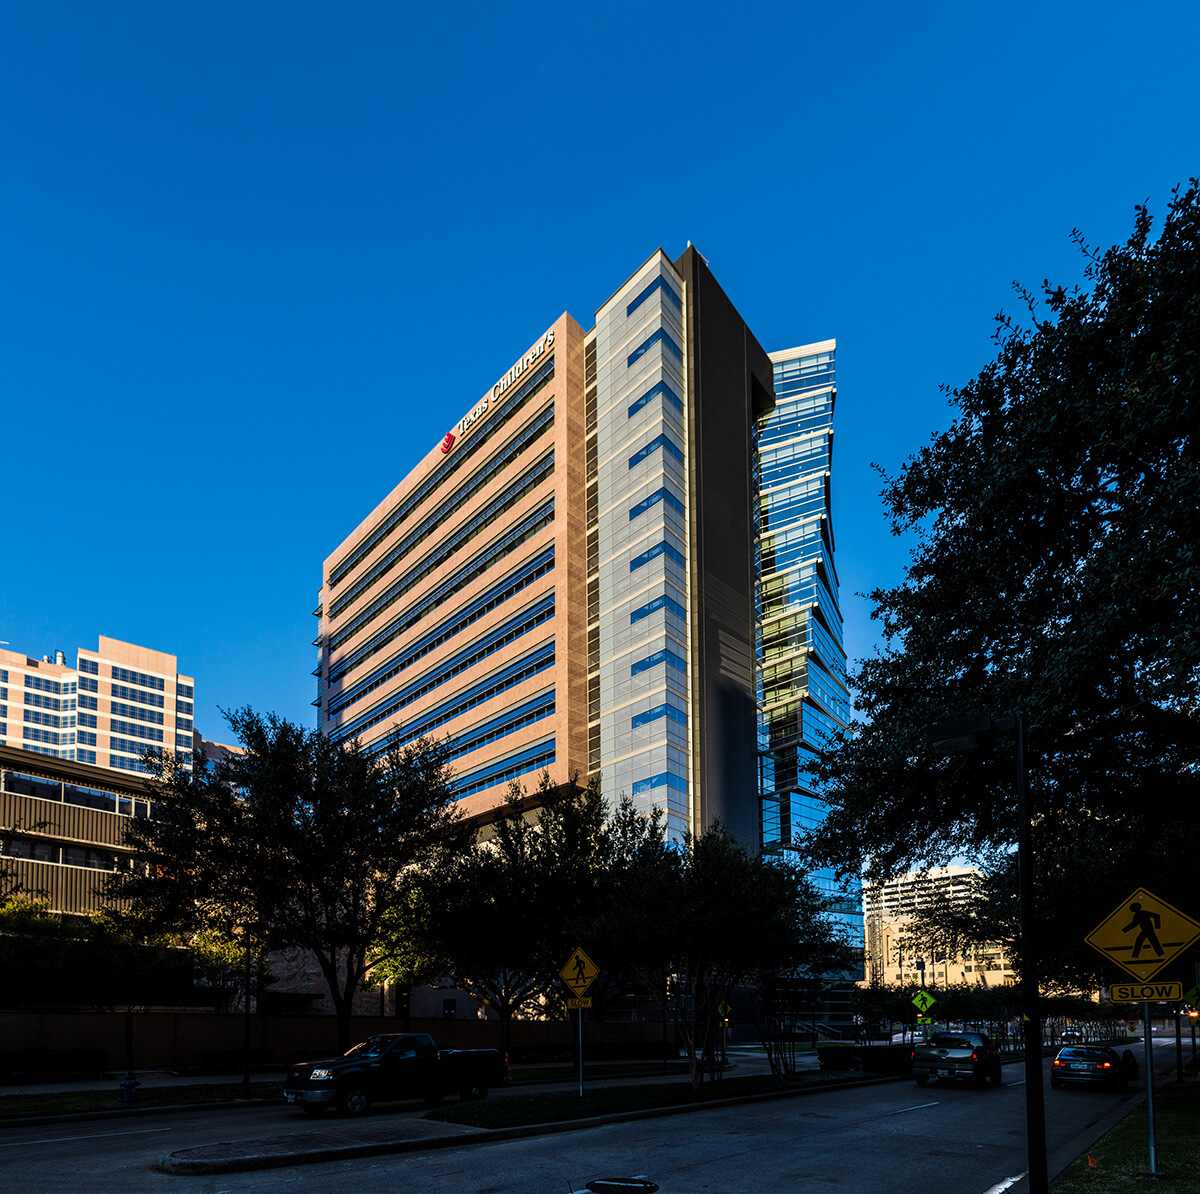 Texas Children's Hospital was ranked No. 4 in the country for pediatric care.